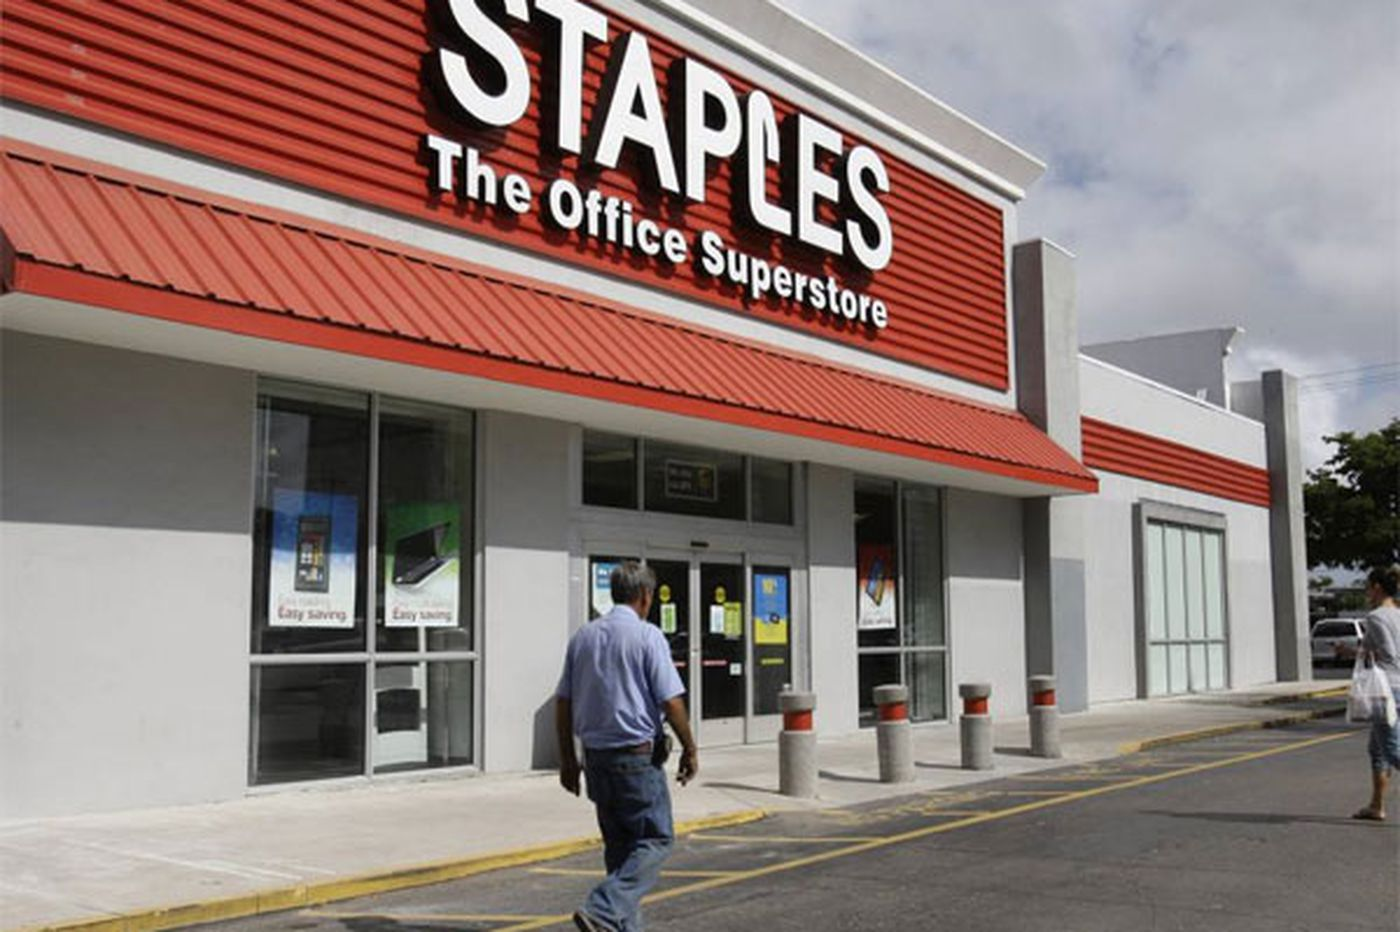 Postal workers decry mail services in Staples stores